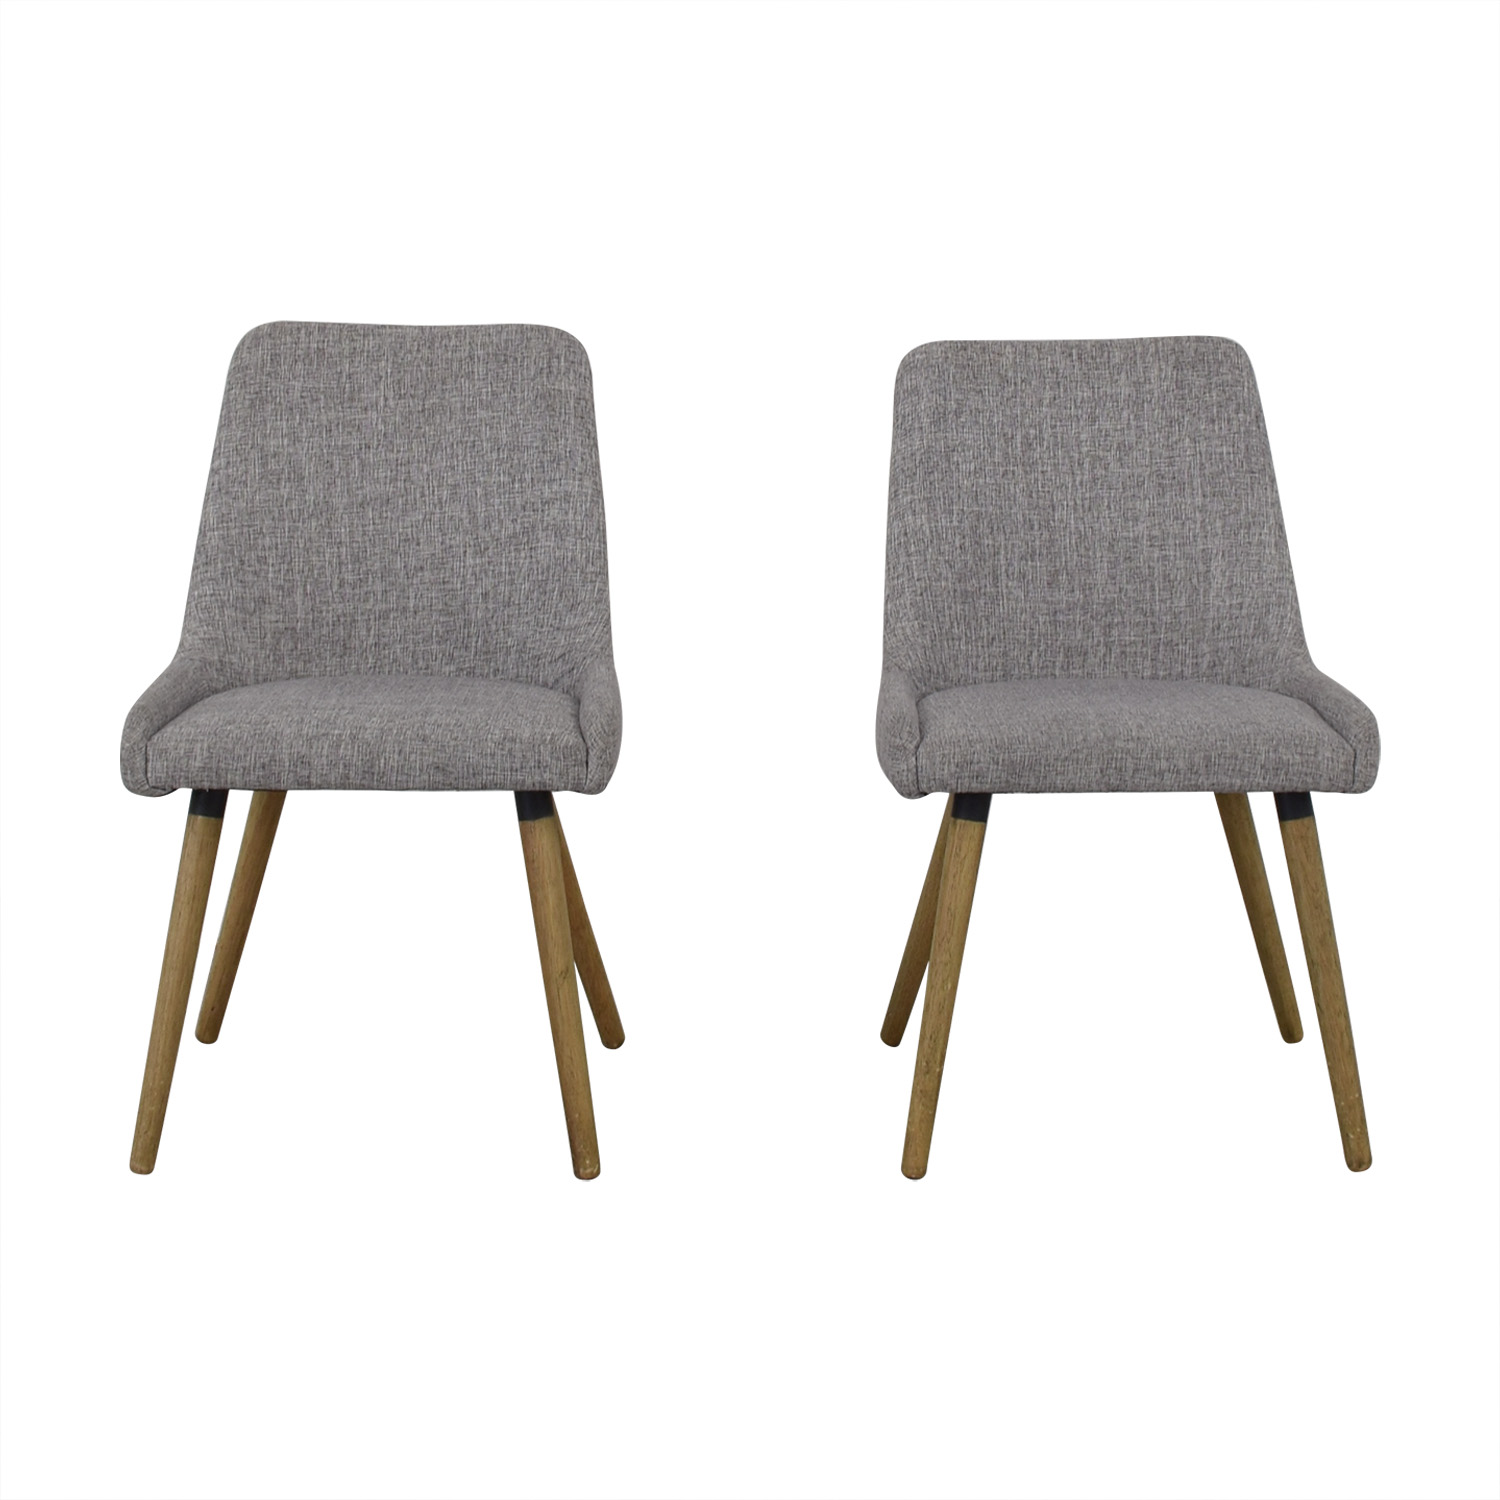 West Elm West Elm Mid-Century Upholstered Dining Chairs coupon